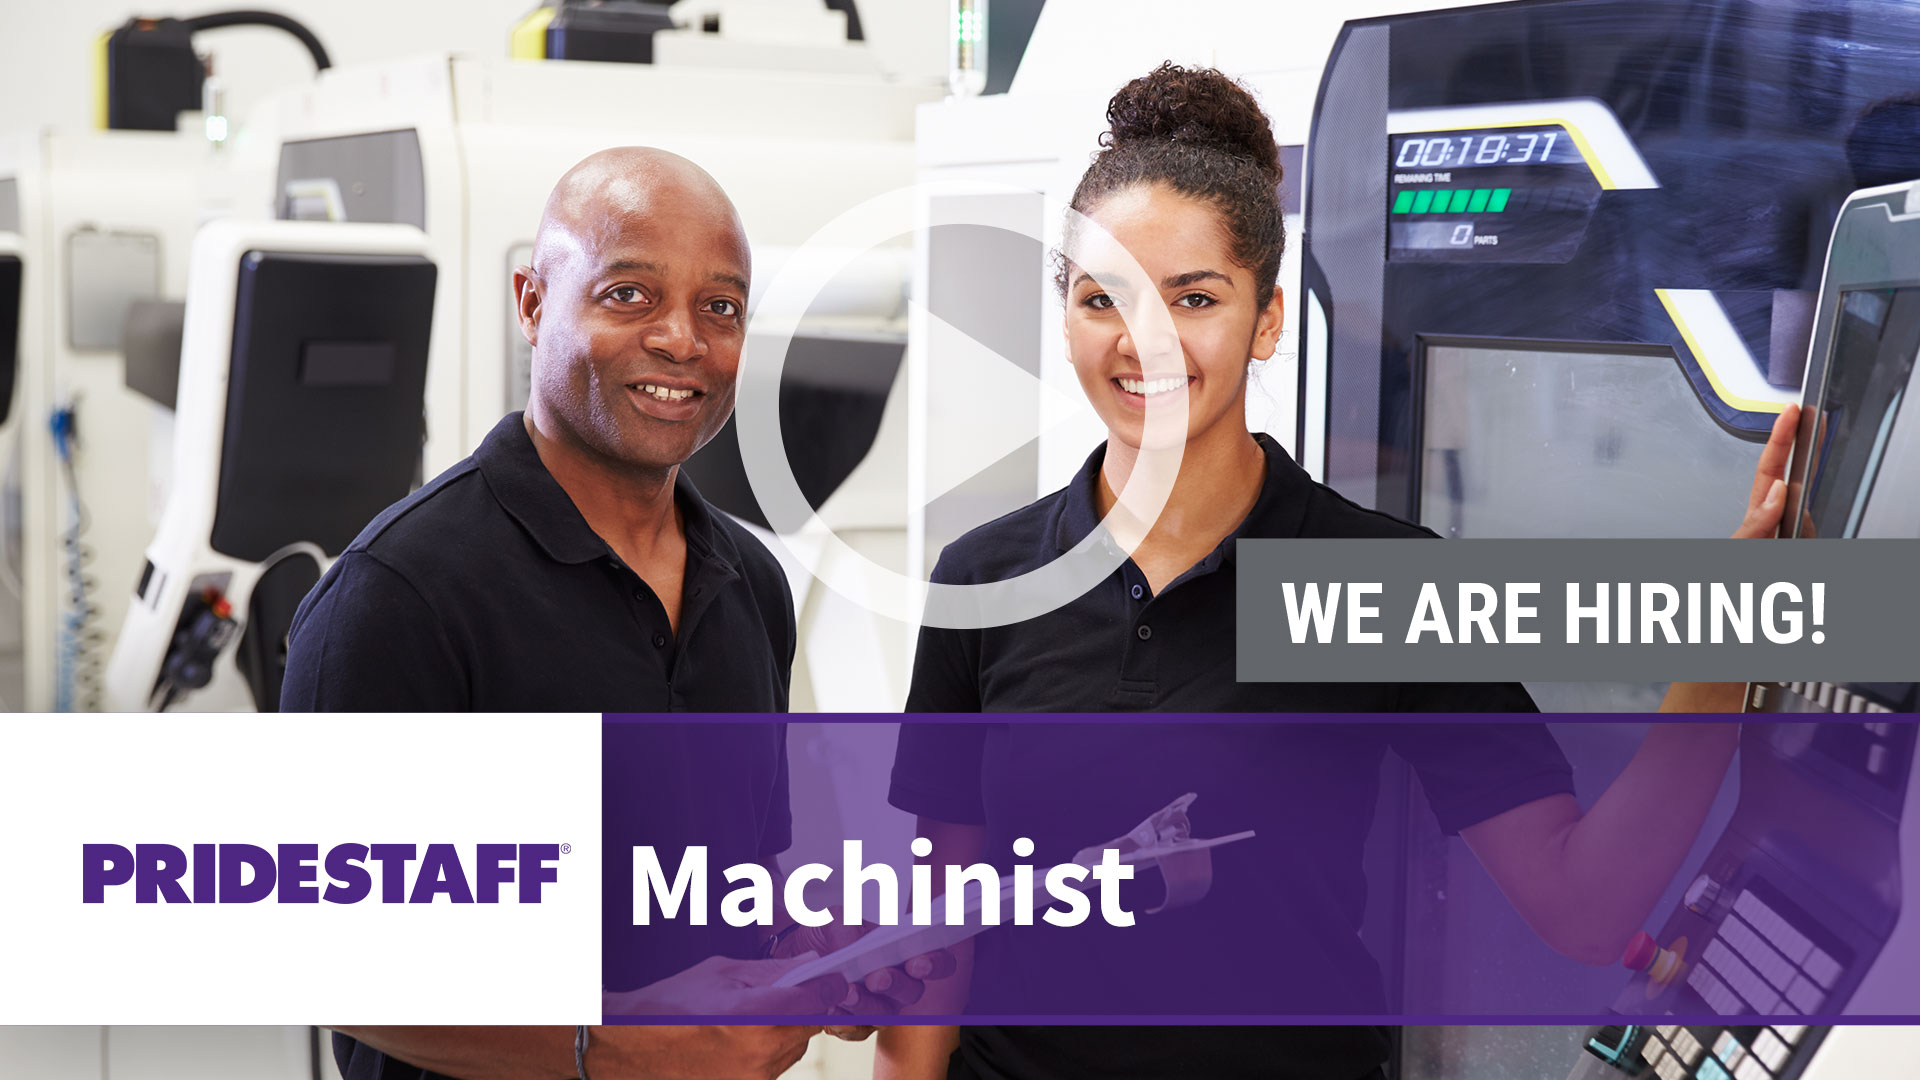 Watch our careers video for available job opening Machinist in Visalia, CA